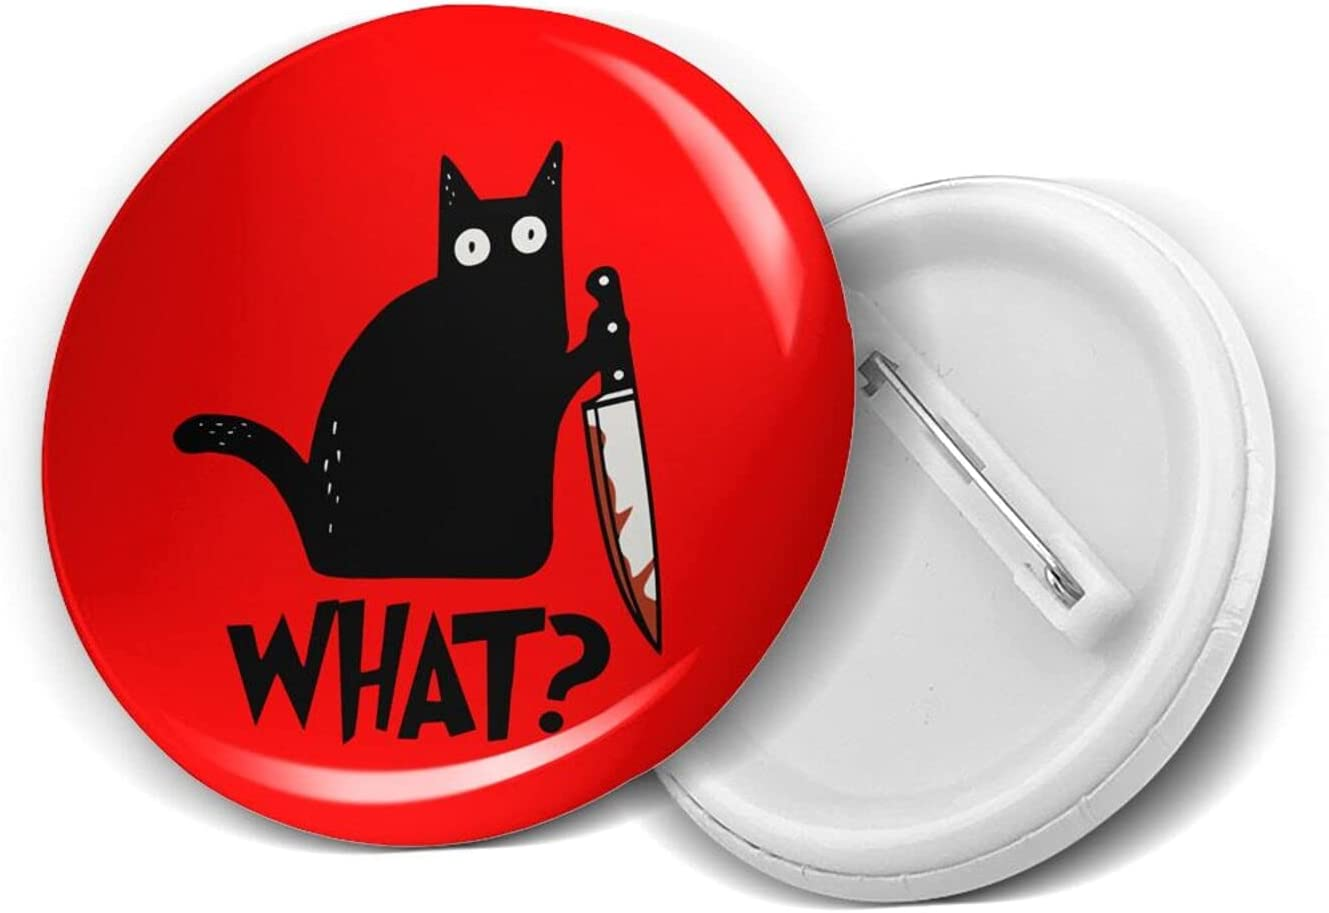 Cat What 1.2/1.8/2.3 Inch Round Pins Brooches Button Medal Tinplate Brooches Emblem Adult Children Pin Badges Decor for Backpacks Costume